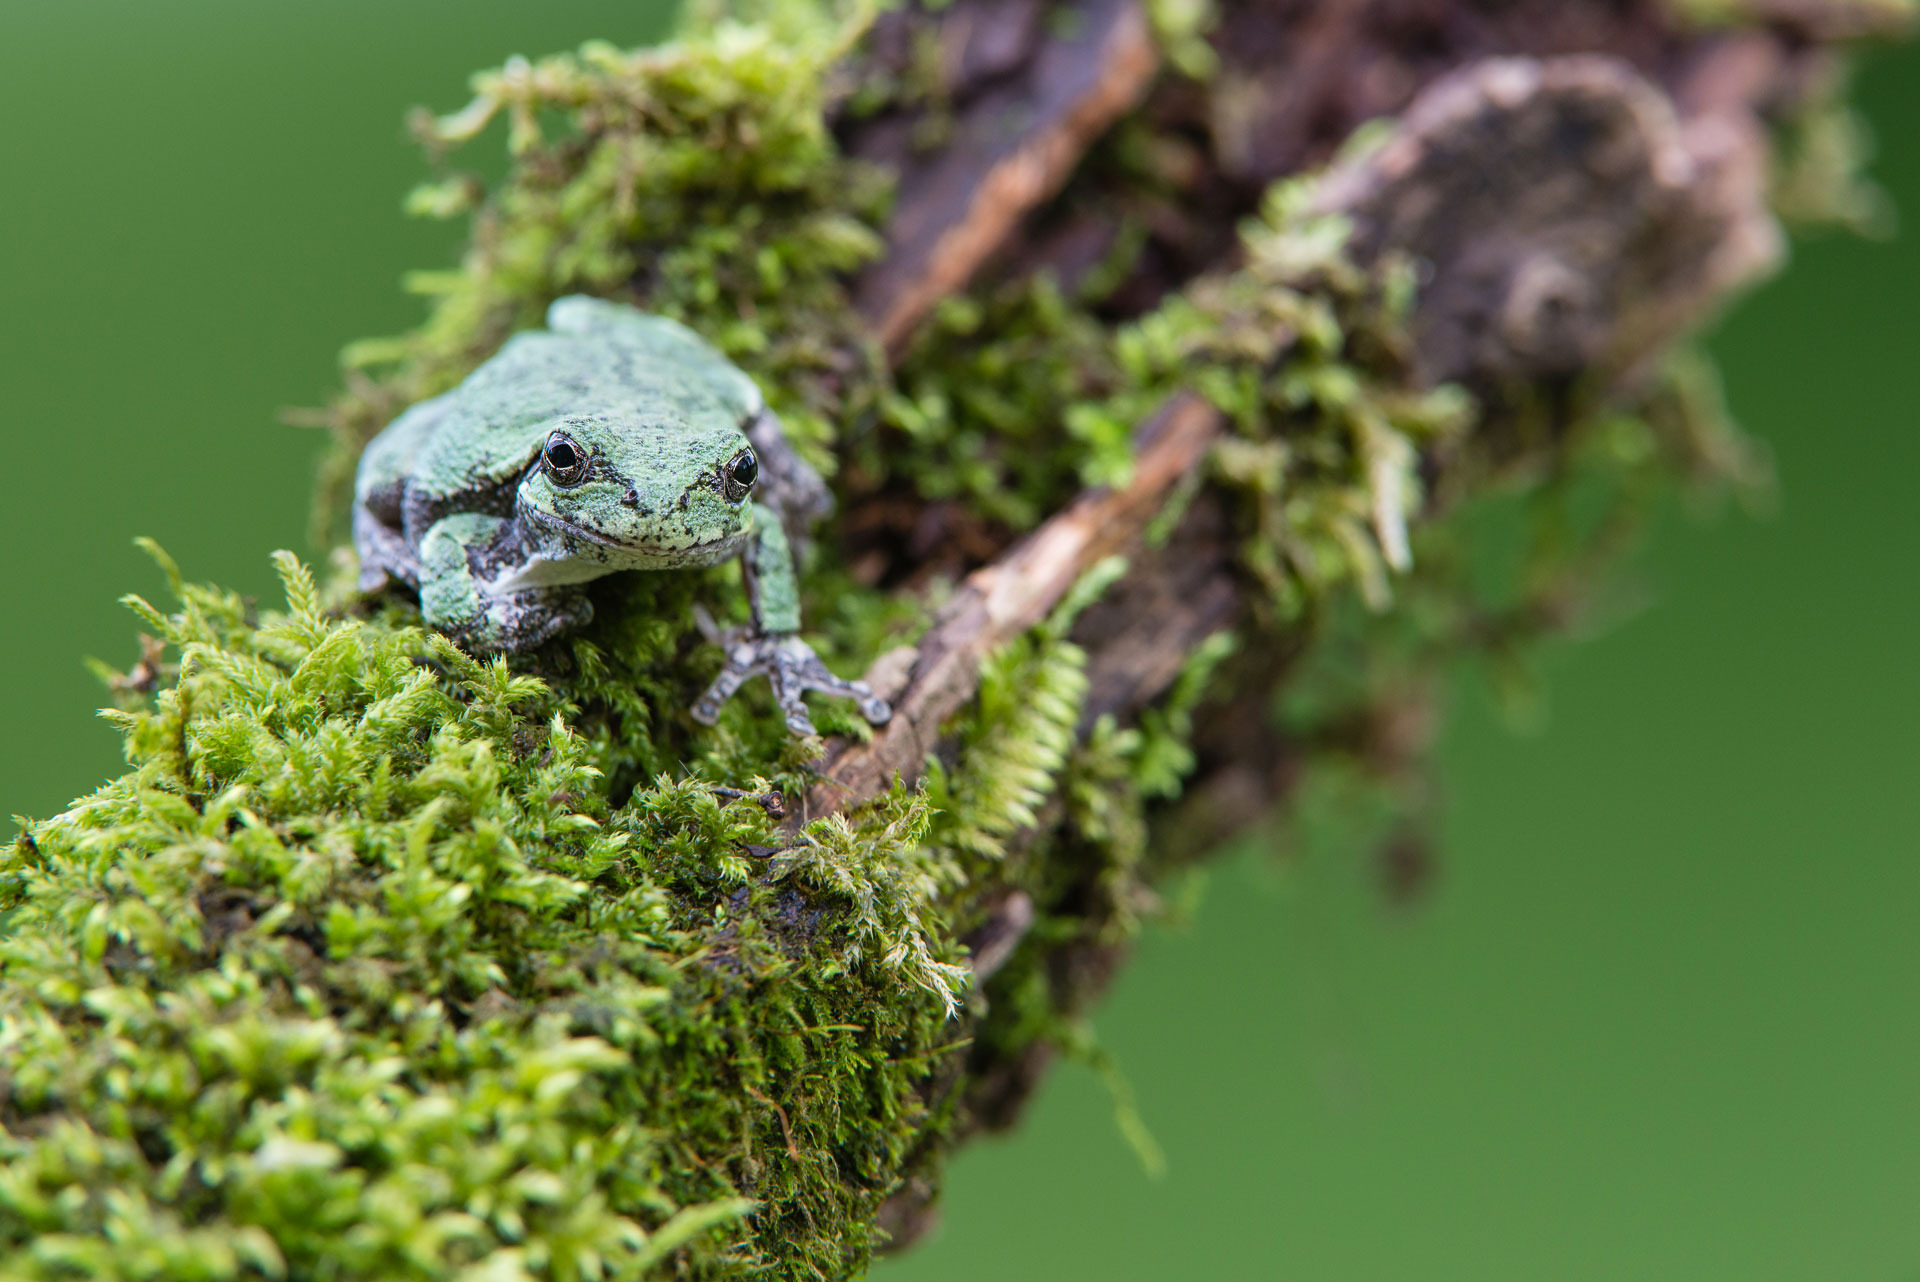 Image #6: Gray Tree Frog dressed in Green, WI